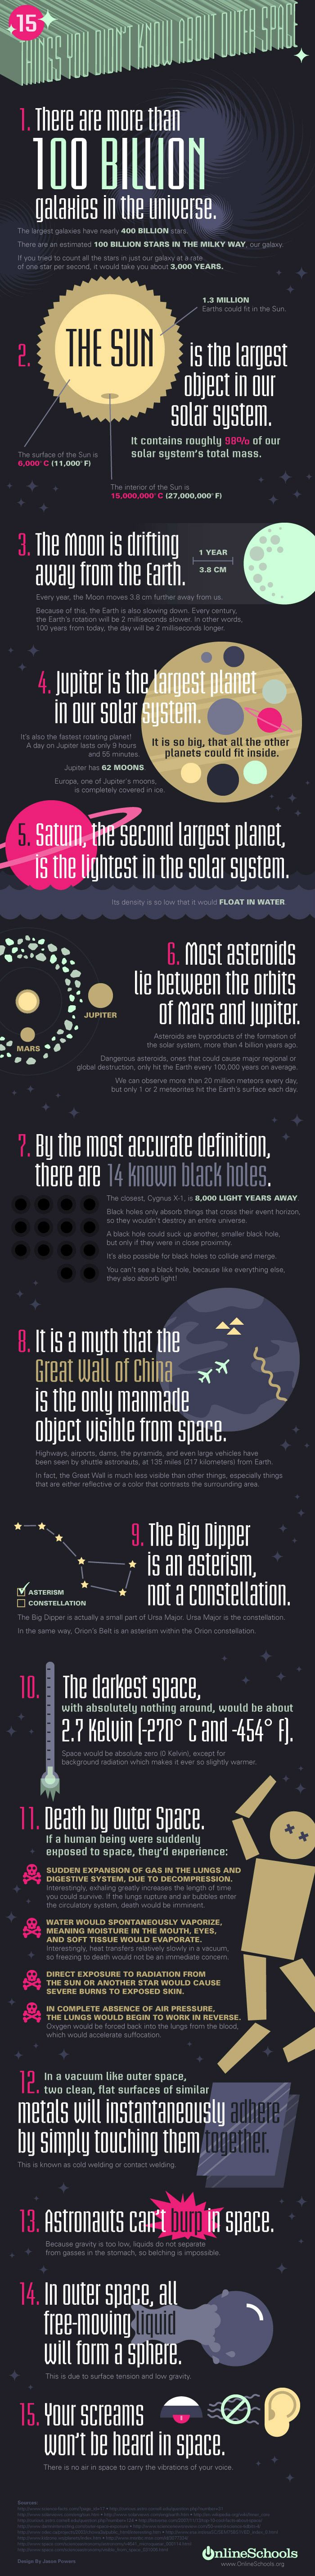 outer space, facts about outer space, outer space facts, infographic, space